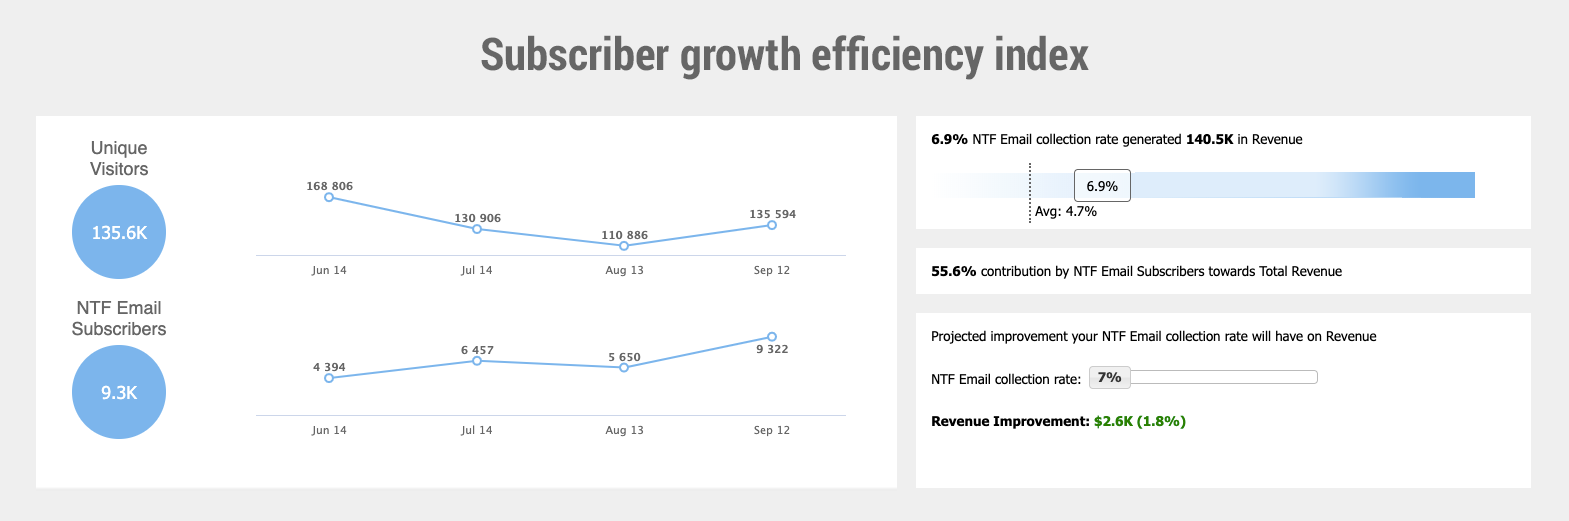 Subscriber growth efficiency index